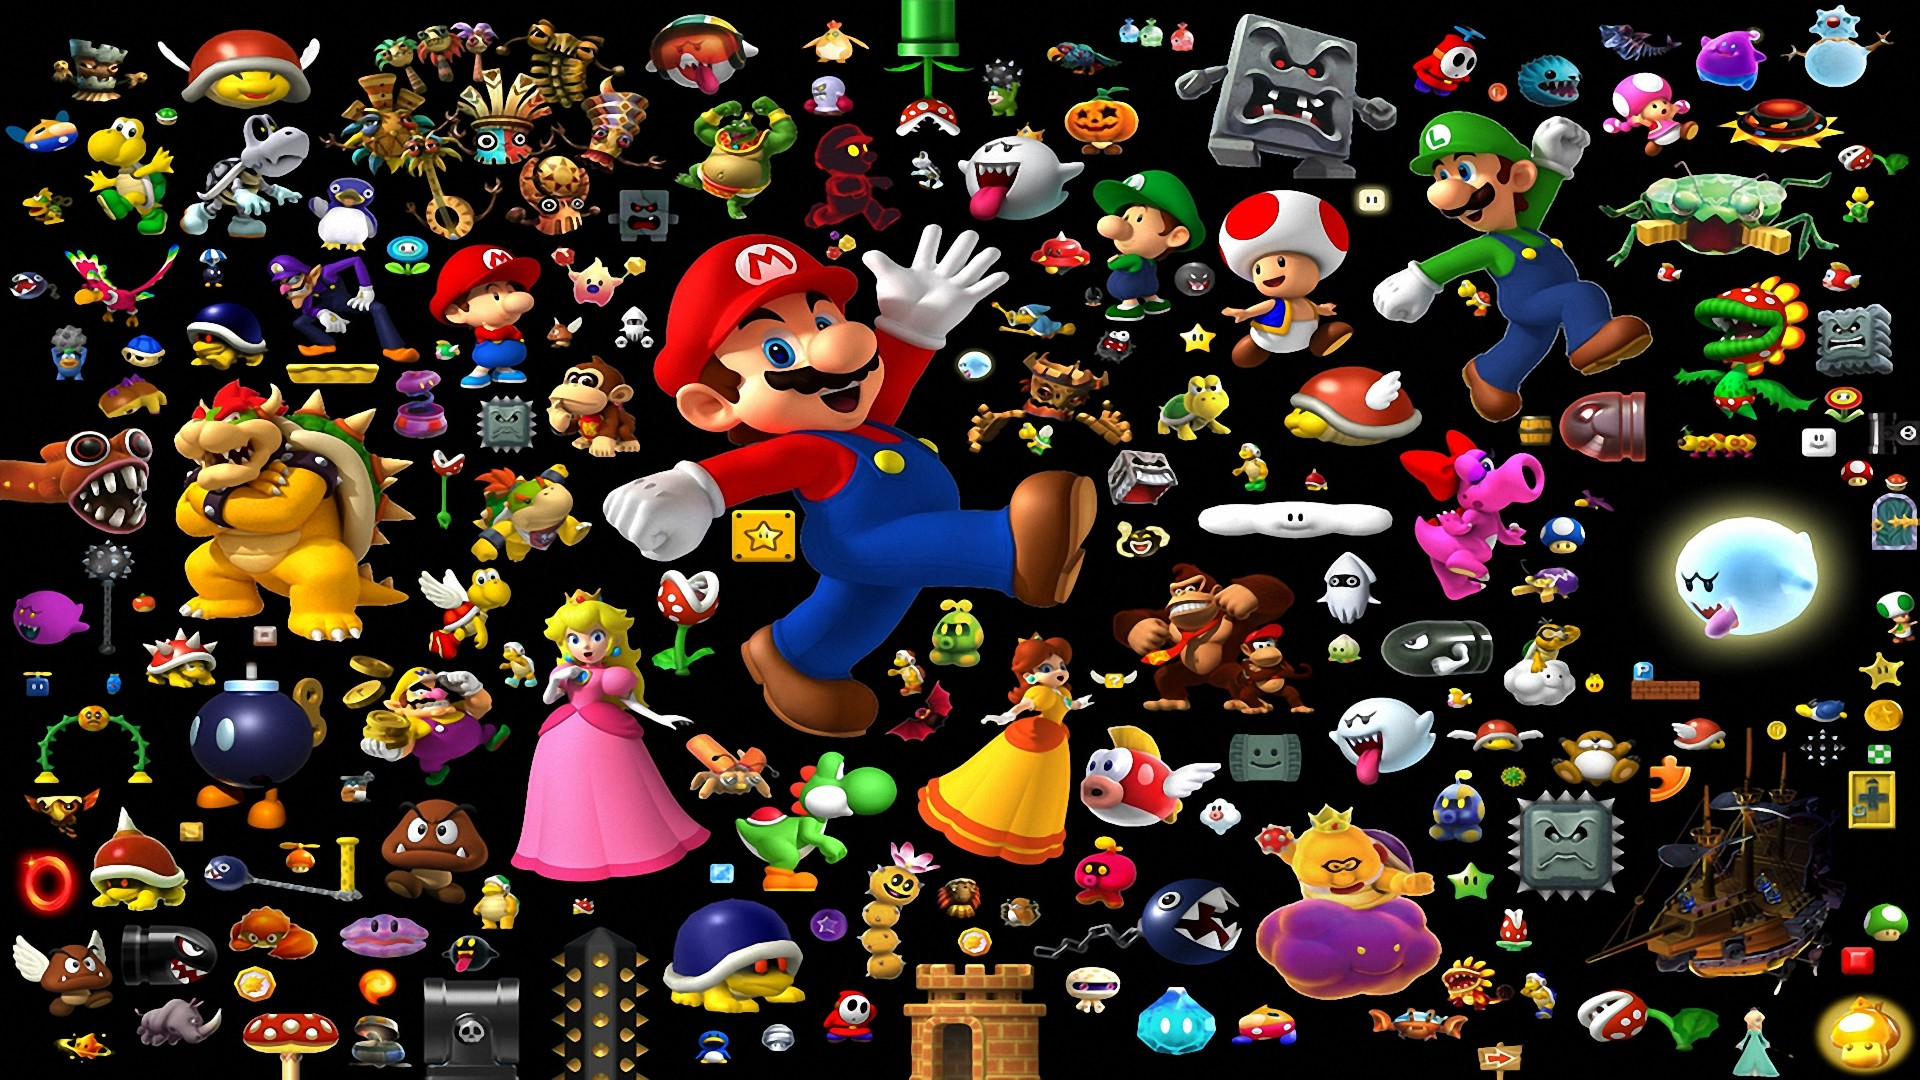 1920x1080 Video Game - Super Mario All-Stars + Super Mario World Wallpaper